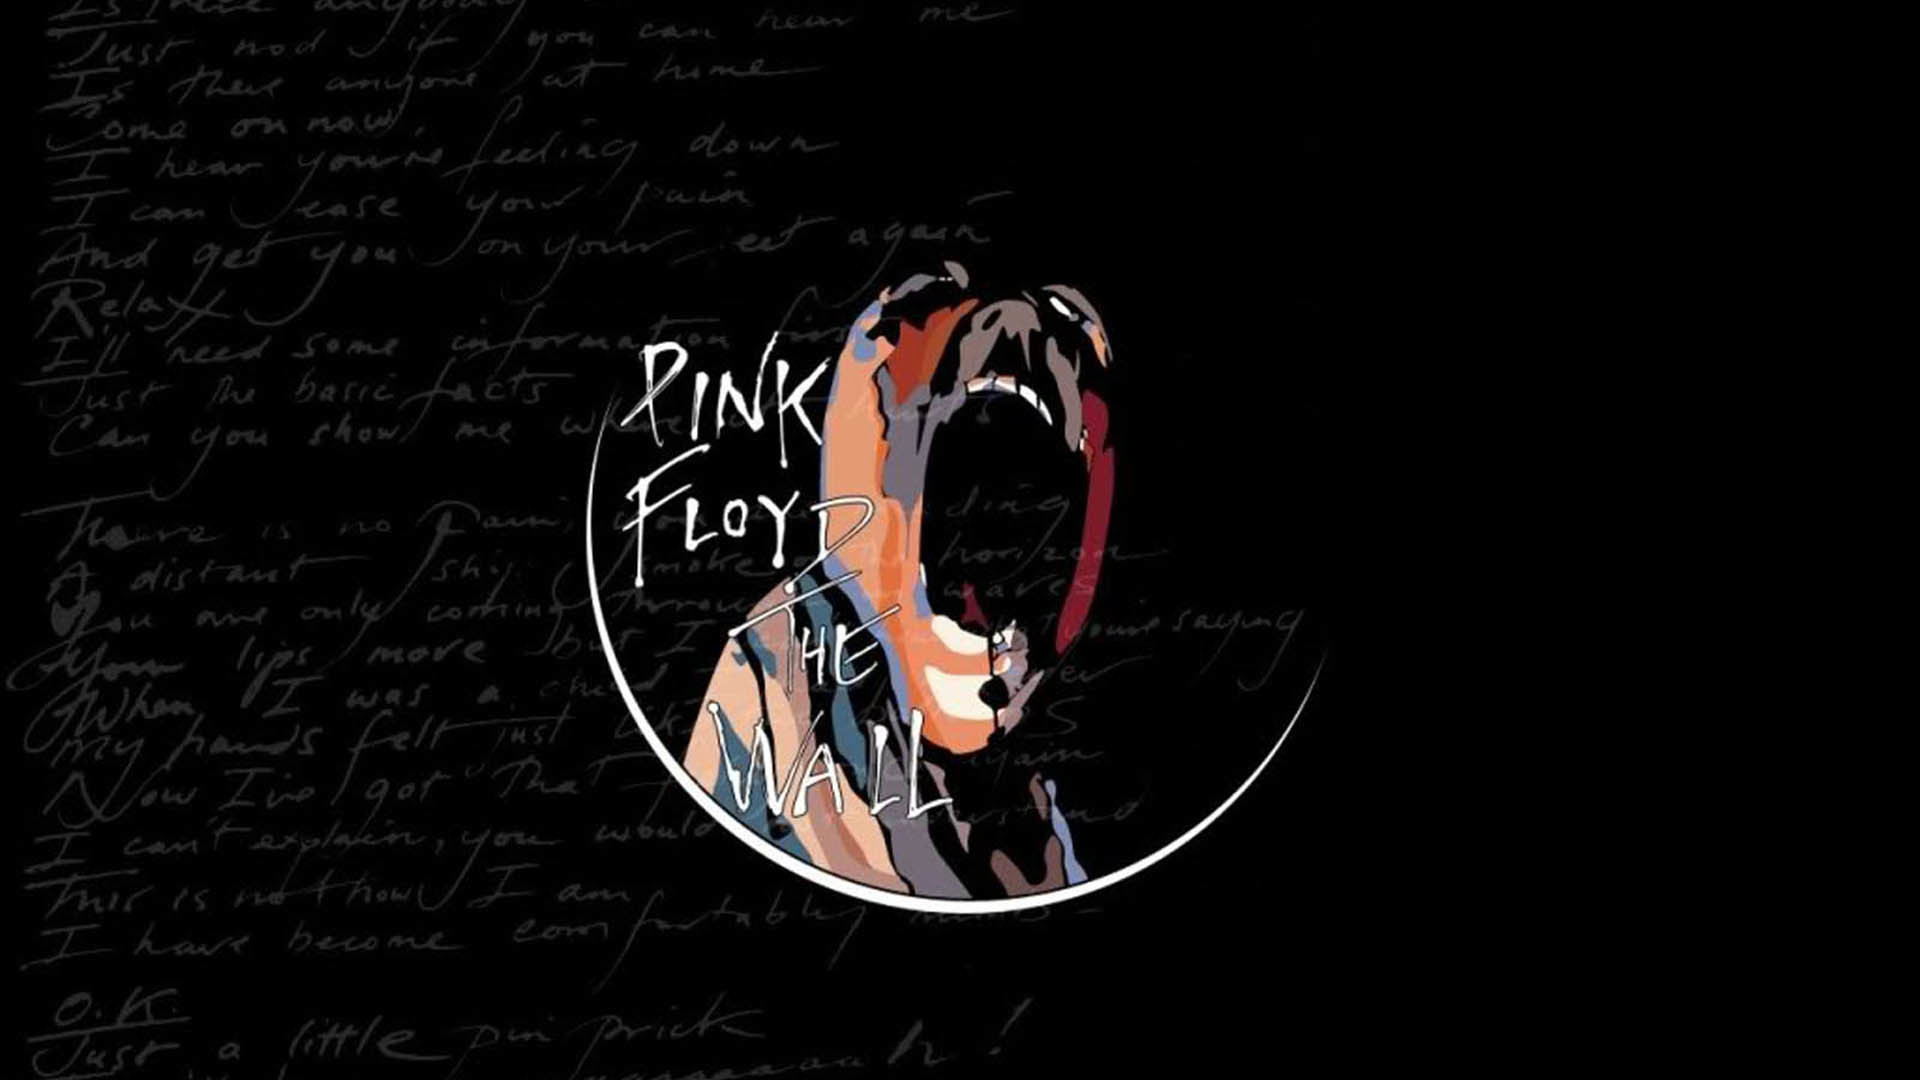 1920x1080 Pink Floyd Wallpapers HD | wallpaper.wi